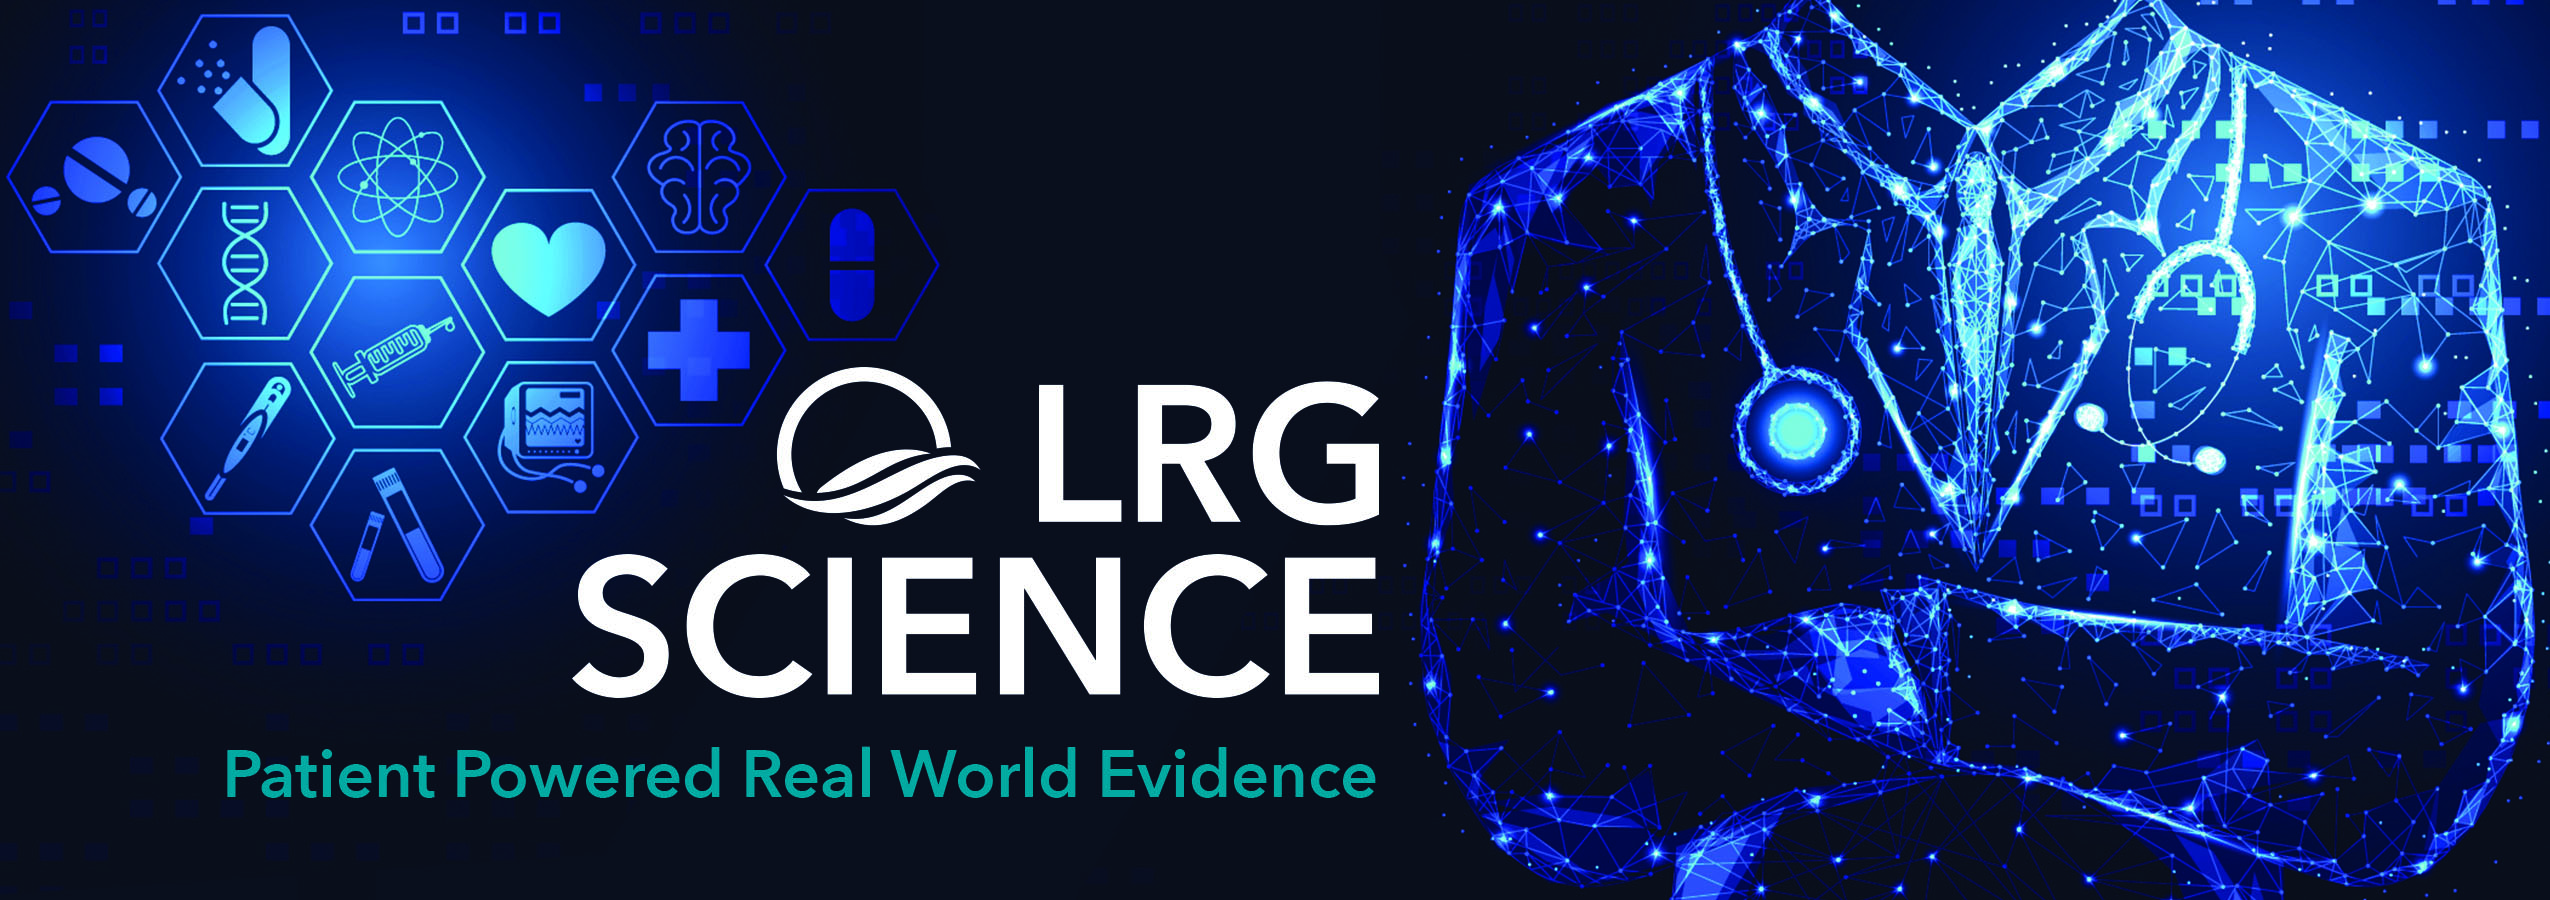 LRG Science Bulletin Banner